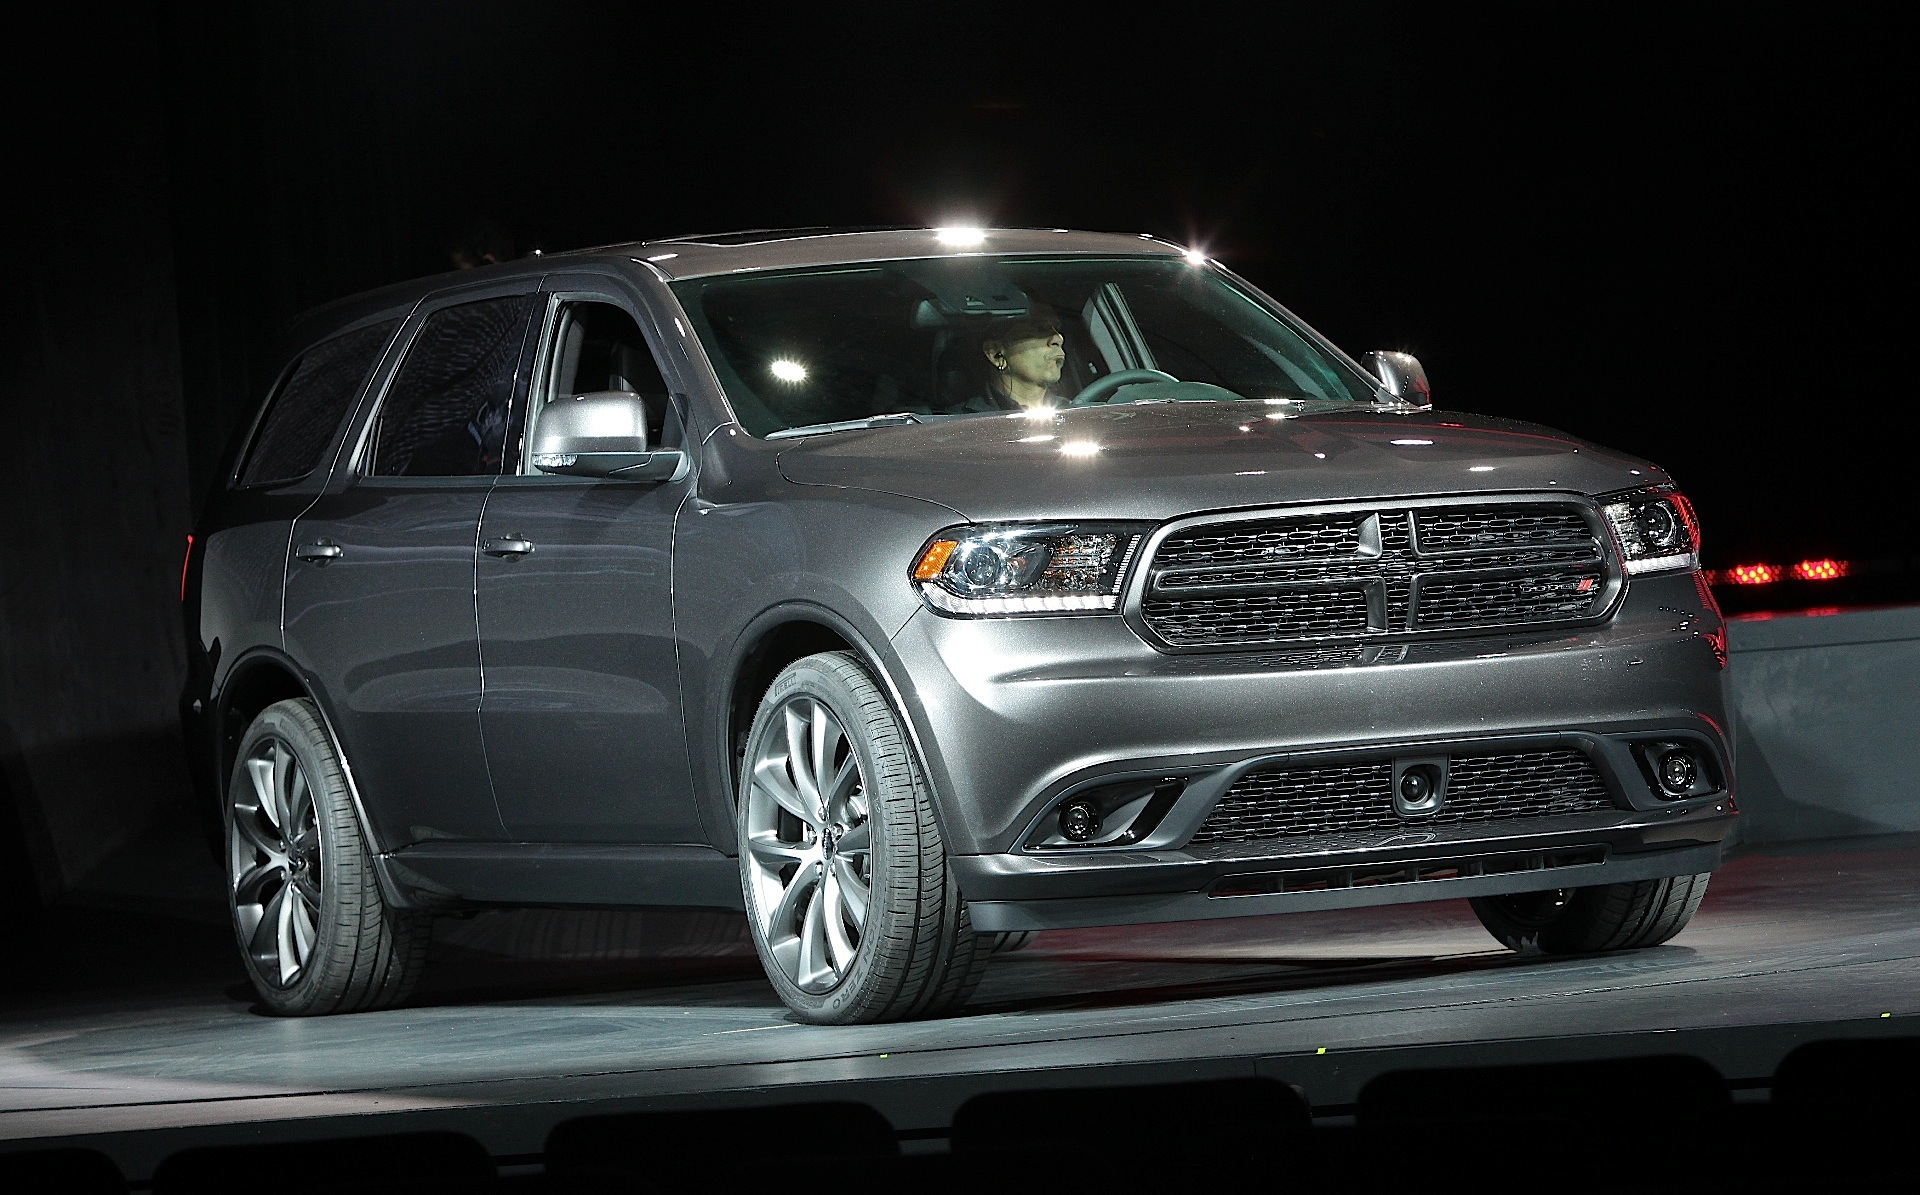 dodge durango specs photos 2013 2014 2015 2016 2017 2018 autoevolution. Black Bedroom Furniture Sets. Home Design Ideas